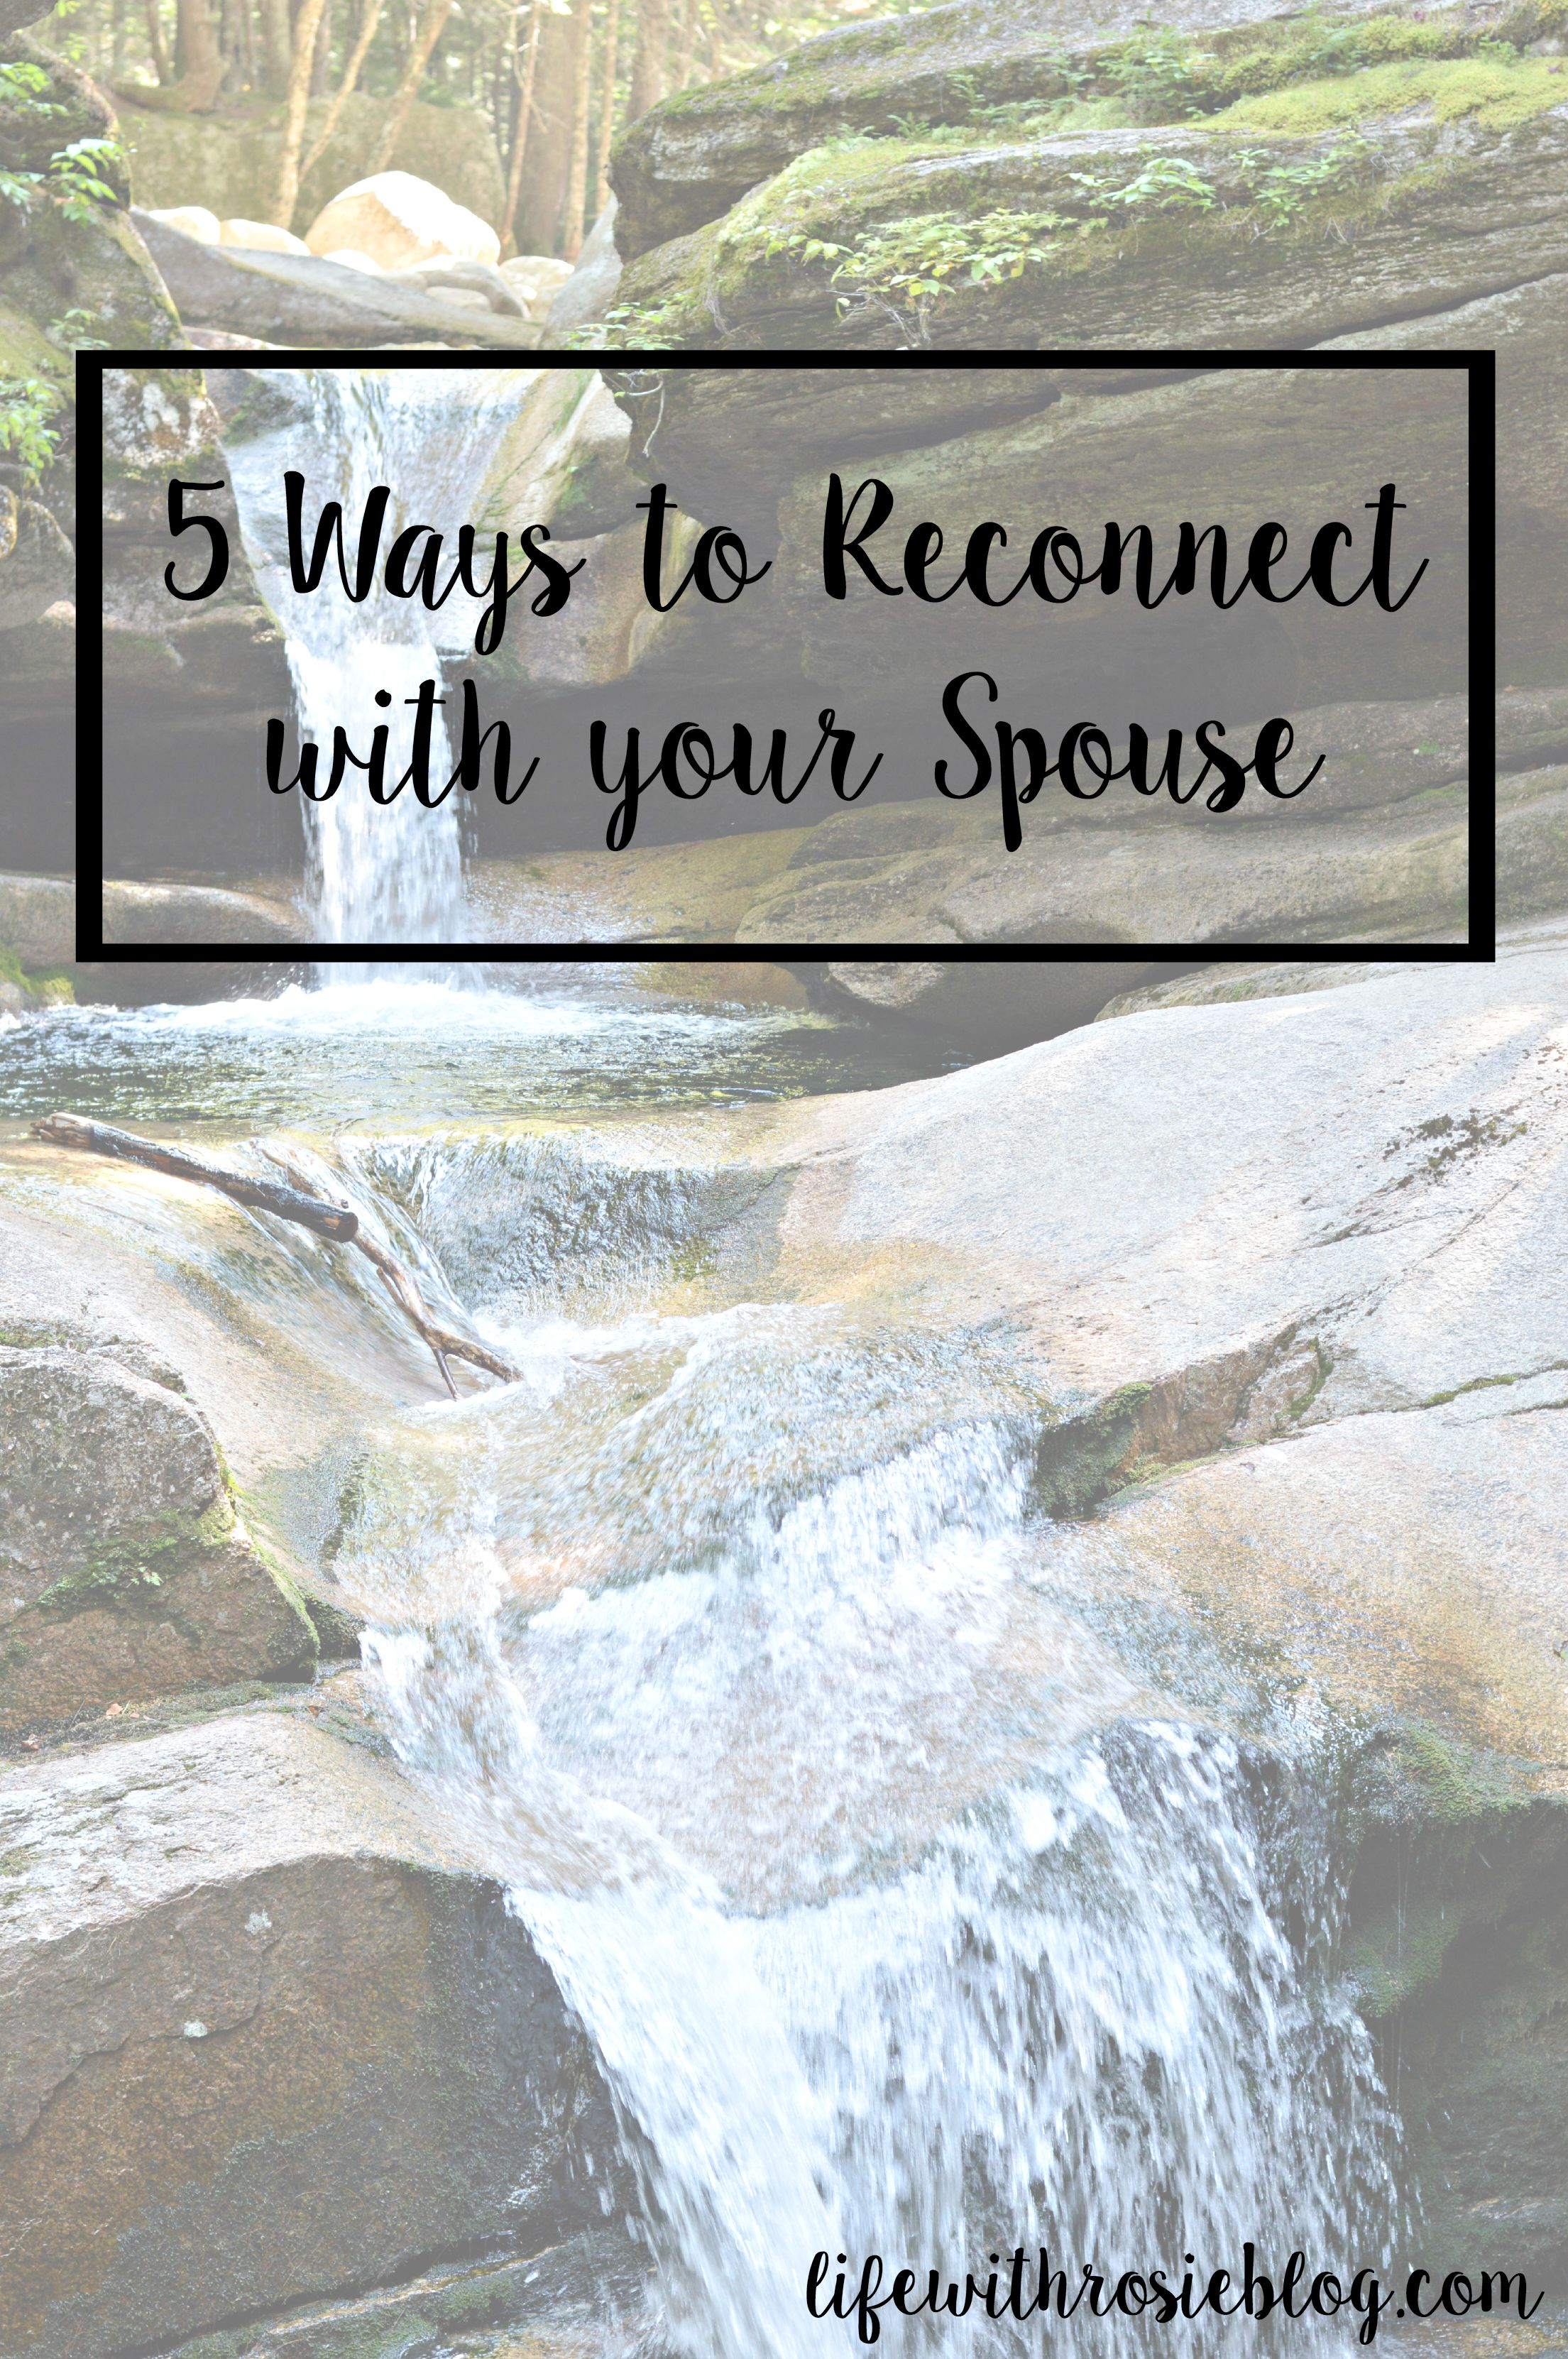 5 Ways to Reconnect with your Spouse // Life with Rosie